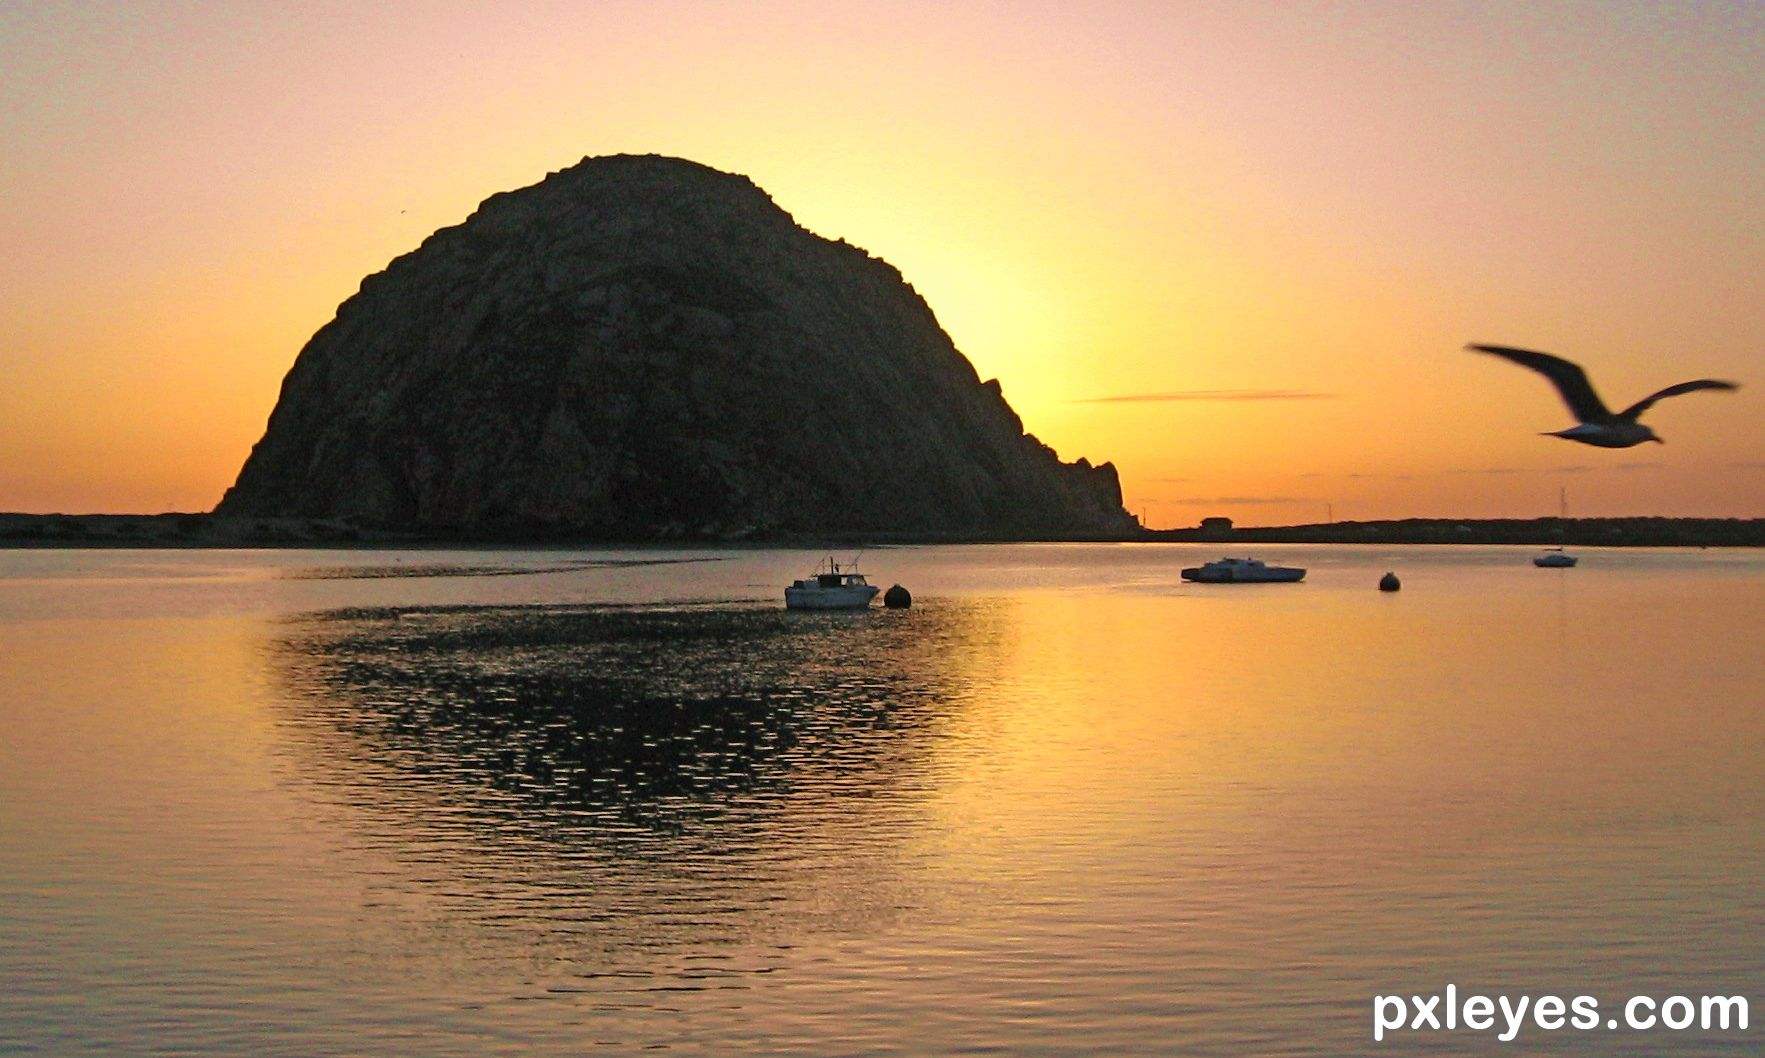 buddhist single women in morro bay Start meeting new people in morro bay with pof start browsing and messaging  more singles by registering to pof, the largest dating site in the world.